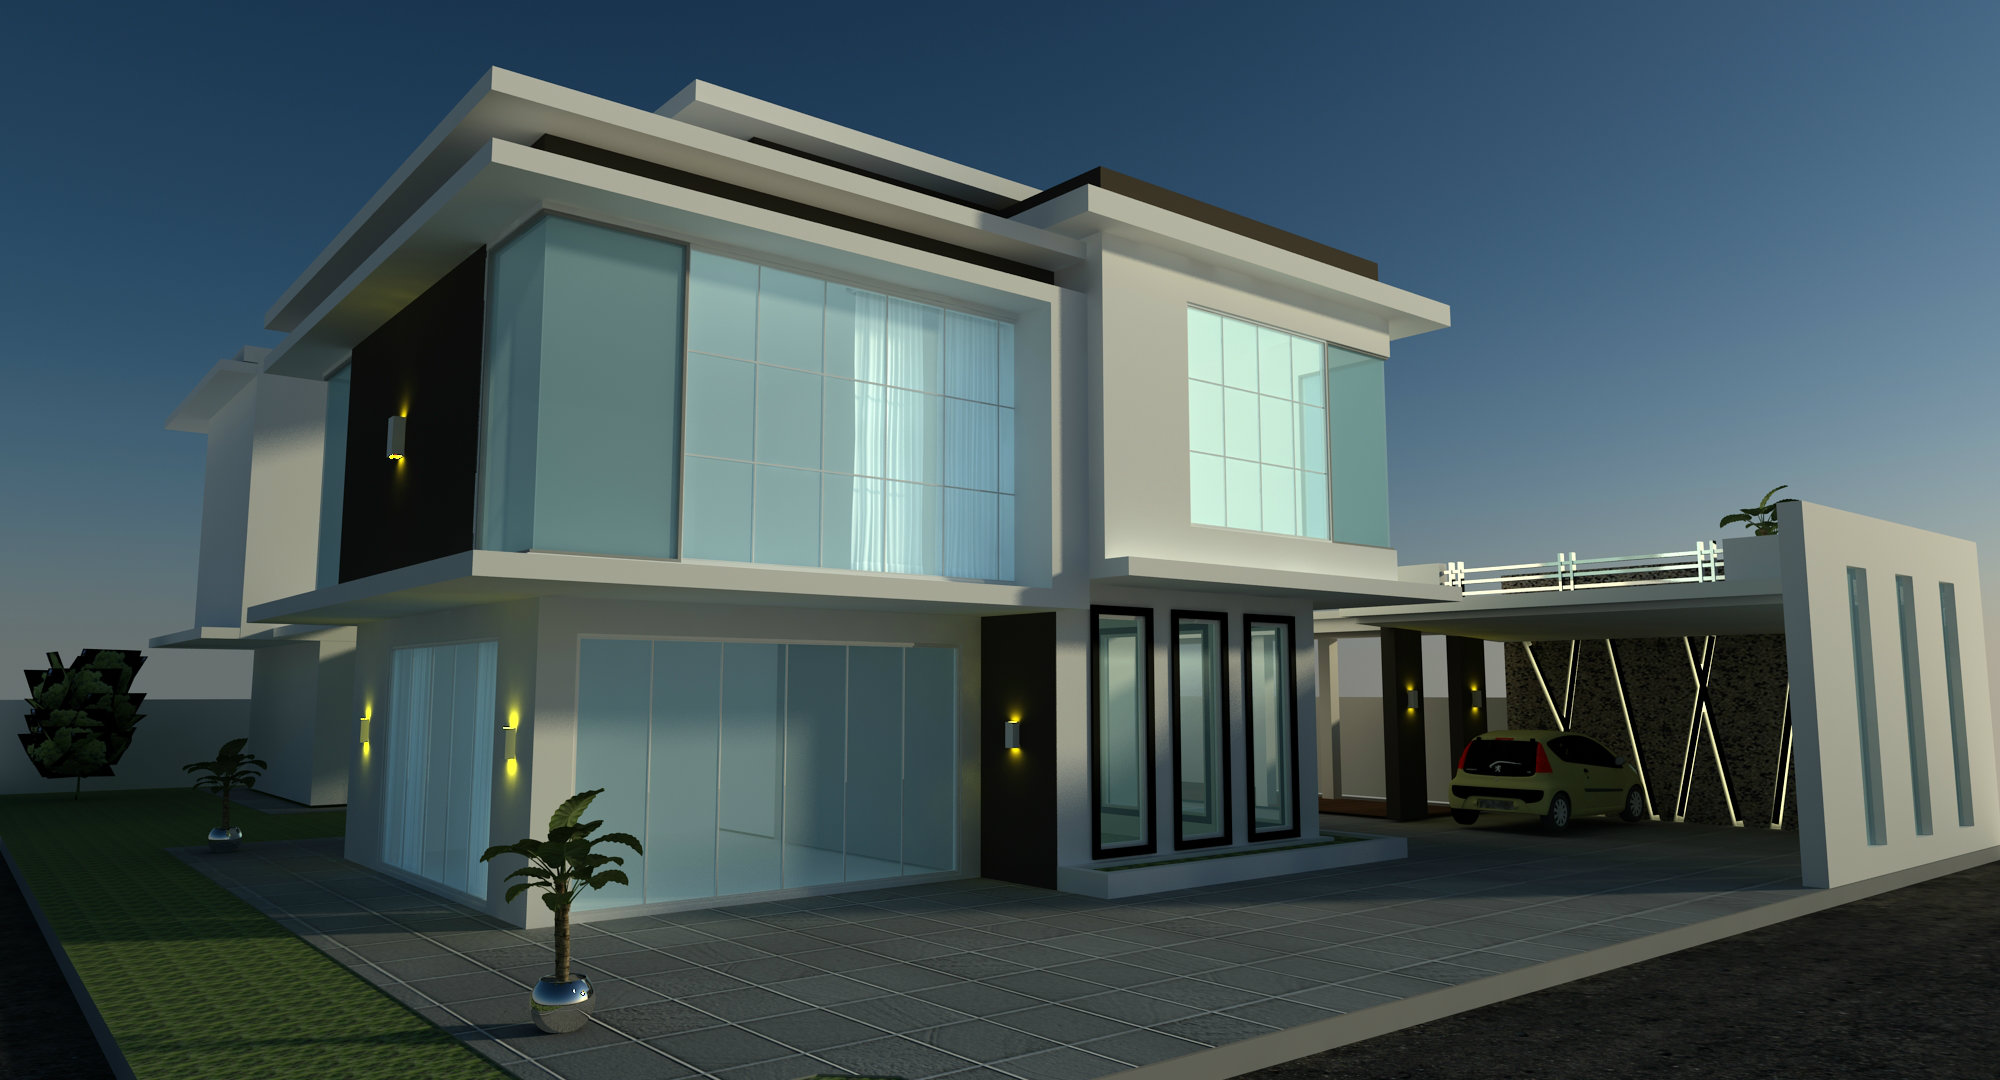 Design for bungalow house project jb interior design for Home design johor bahru